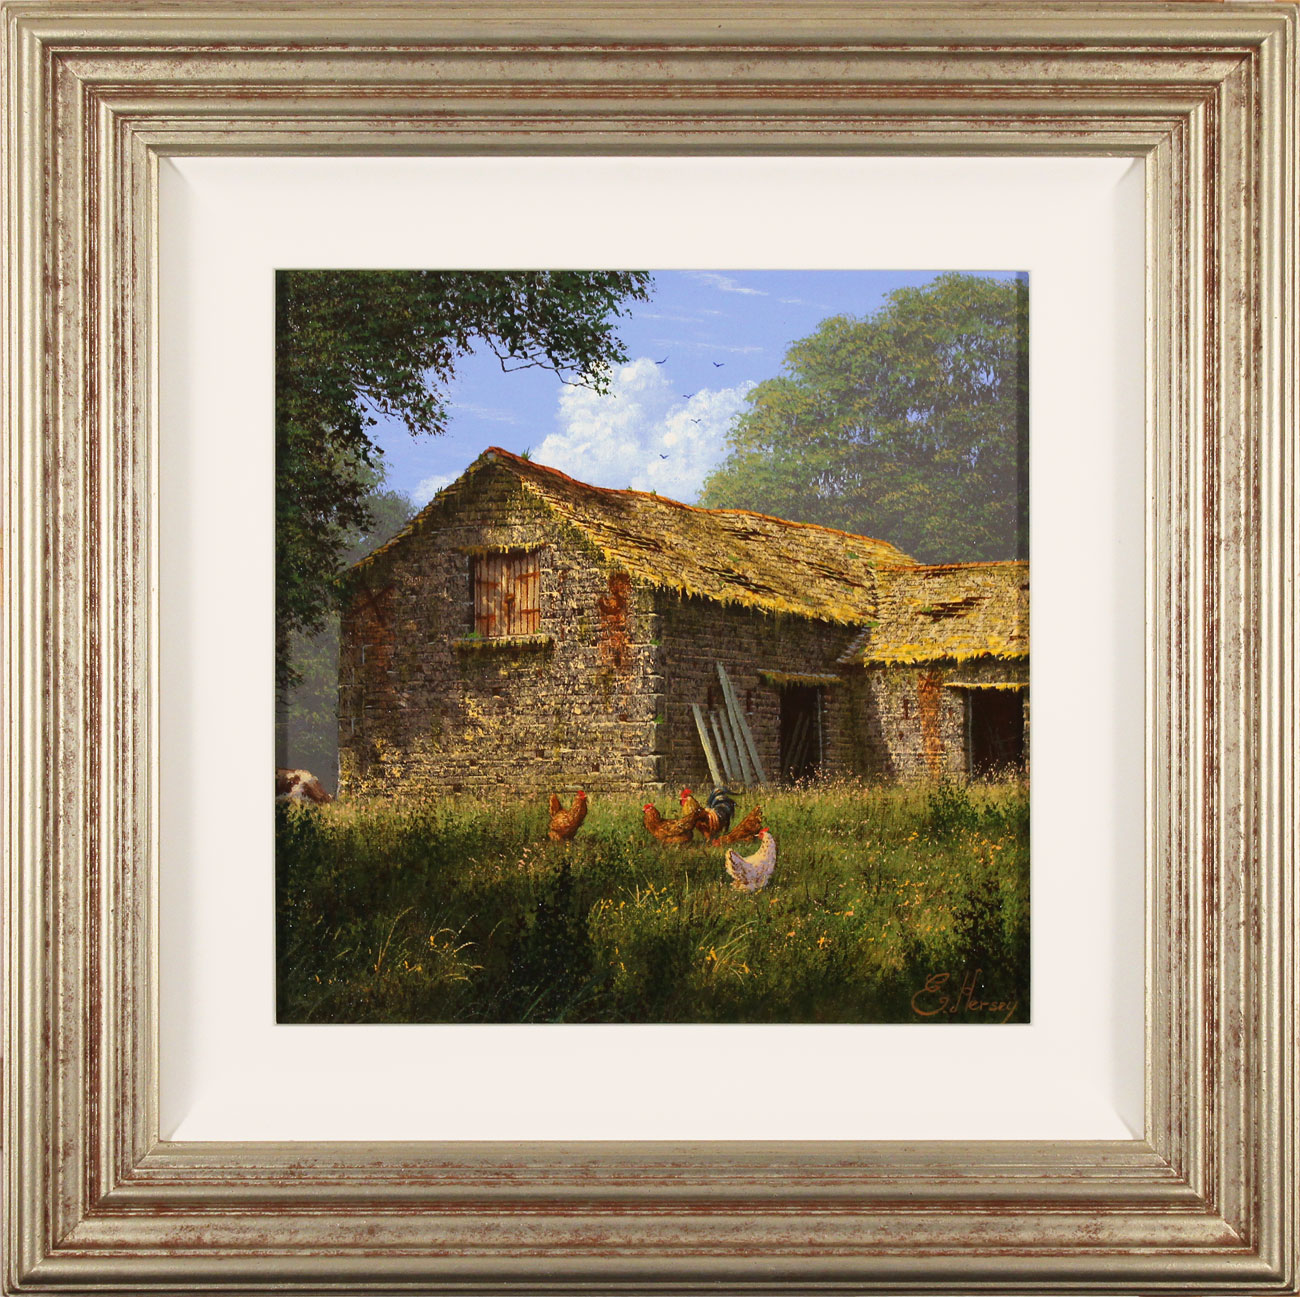 Edward Hersey, Original oil painting on canvas, The Summer Barn Click to enlarge